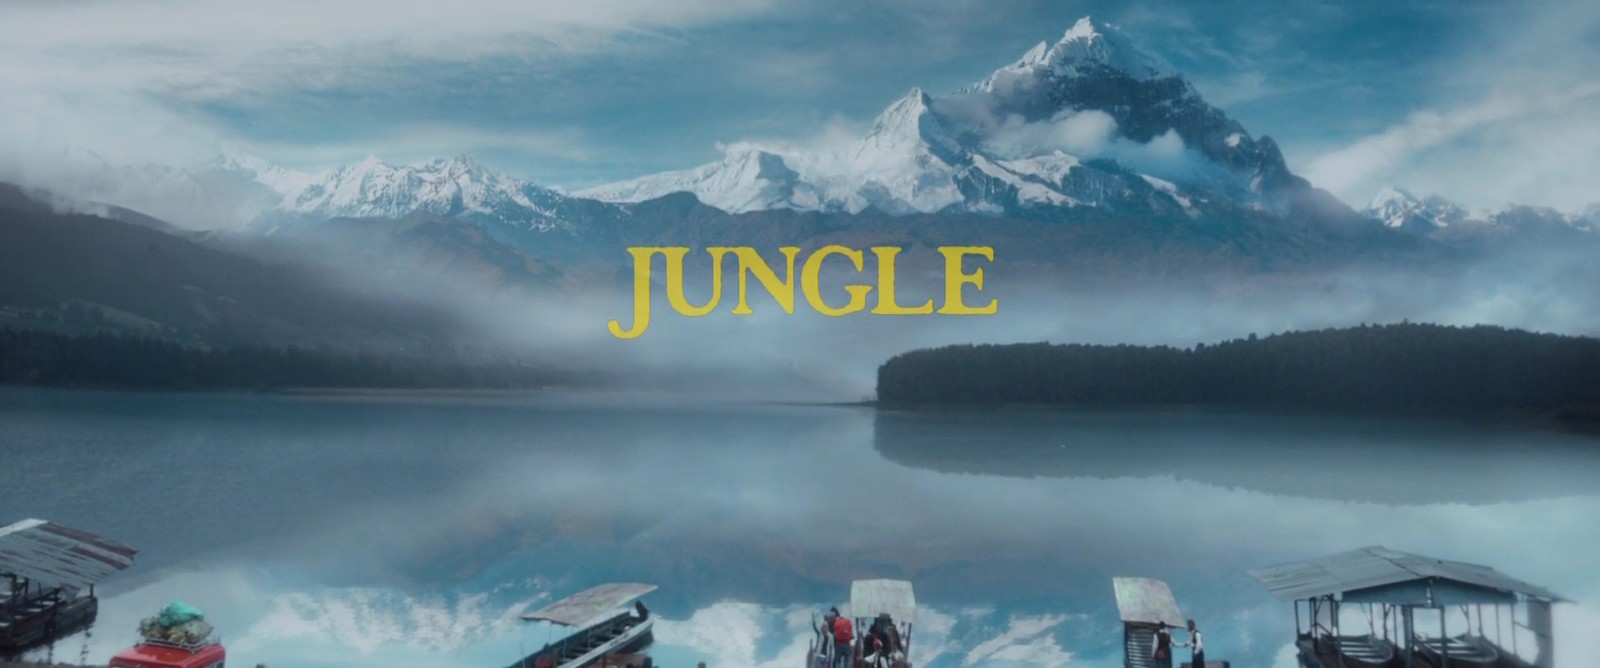 Jungle (2017) - Environment Artist - Cutting Edge